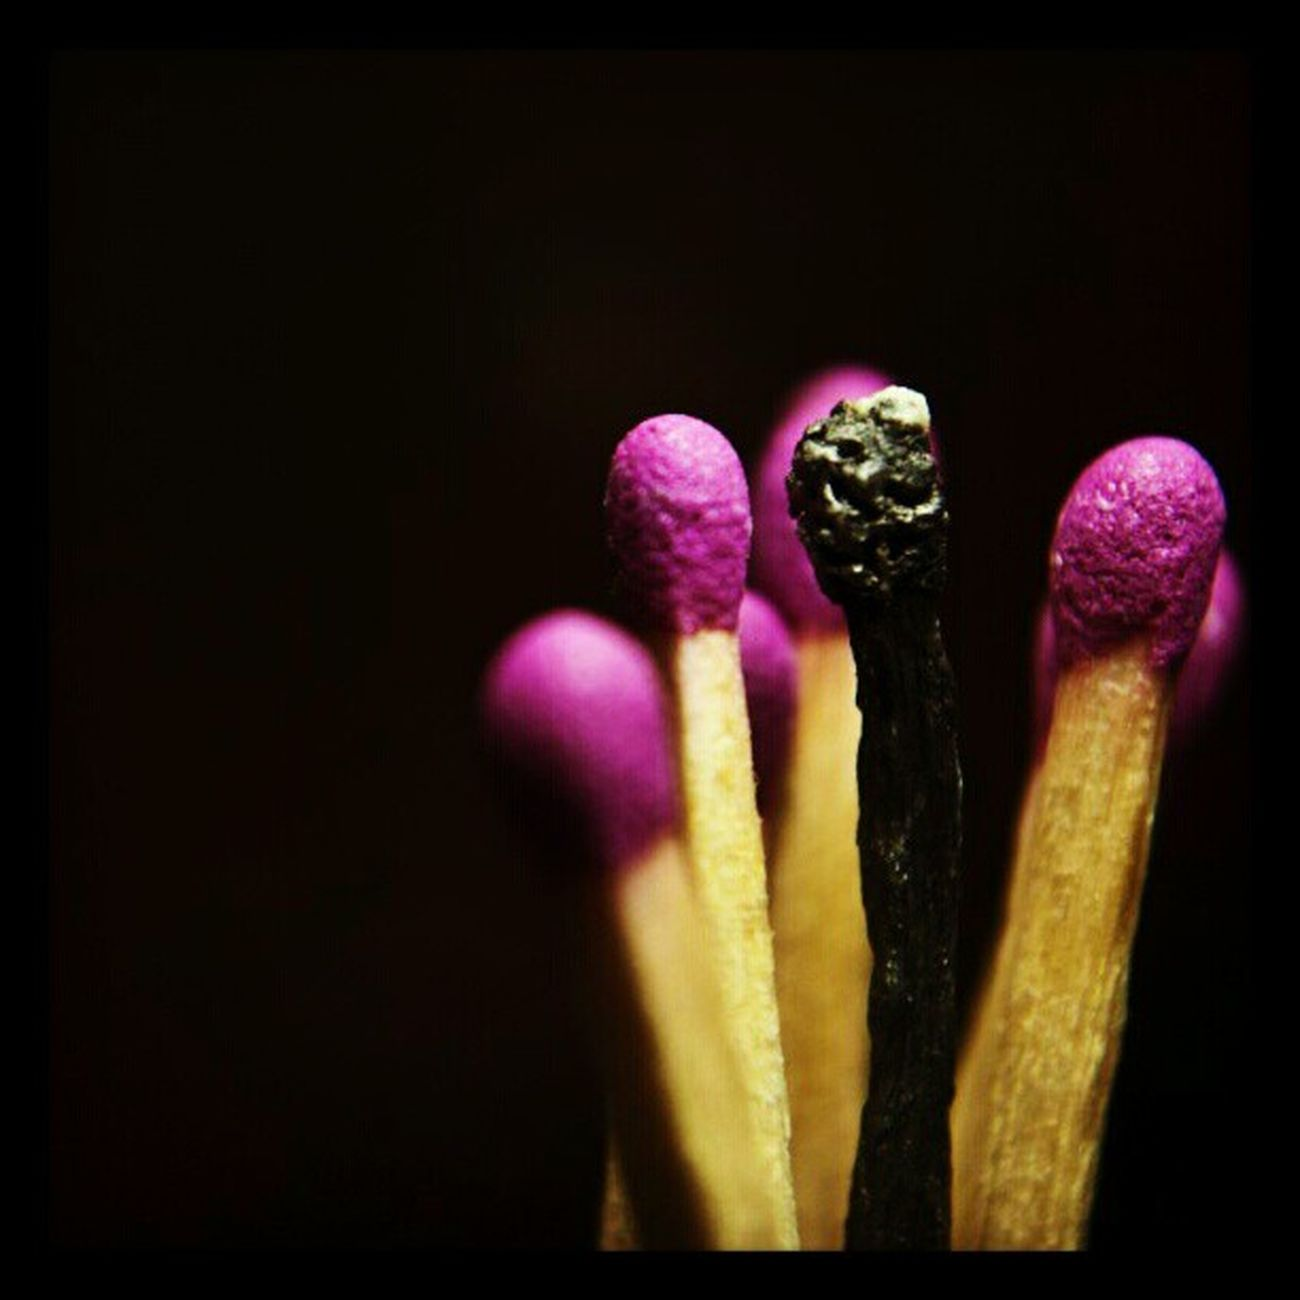 WHPhideandseek Match Stick Instagram purple picoftheday